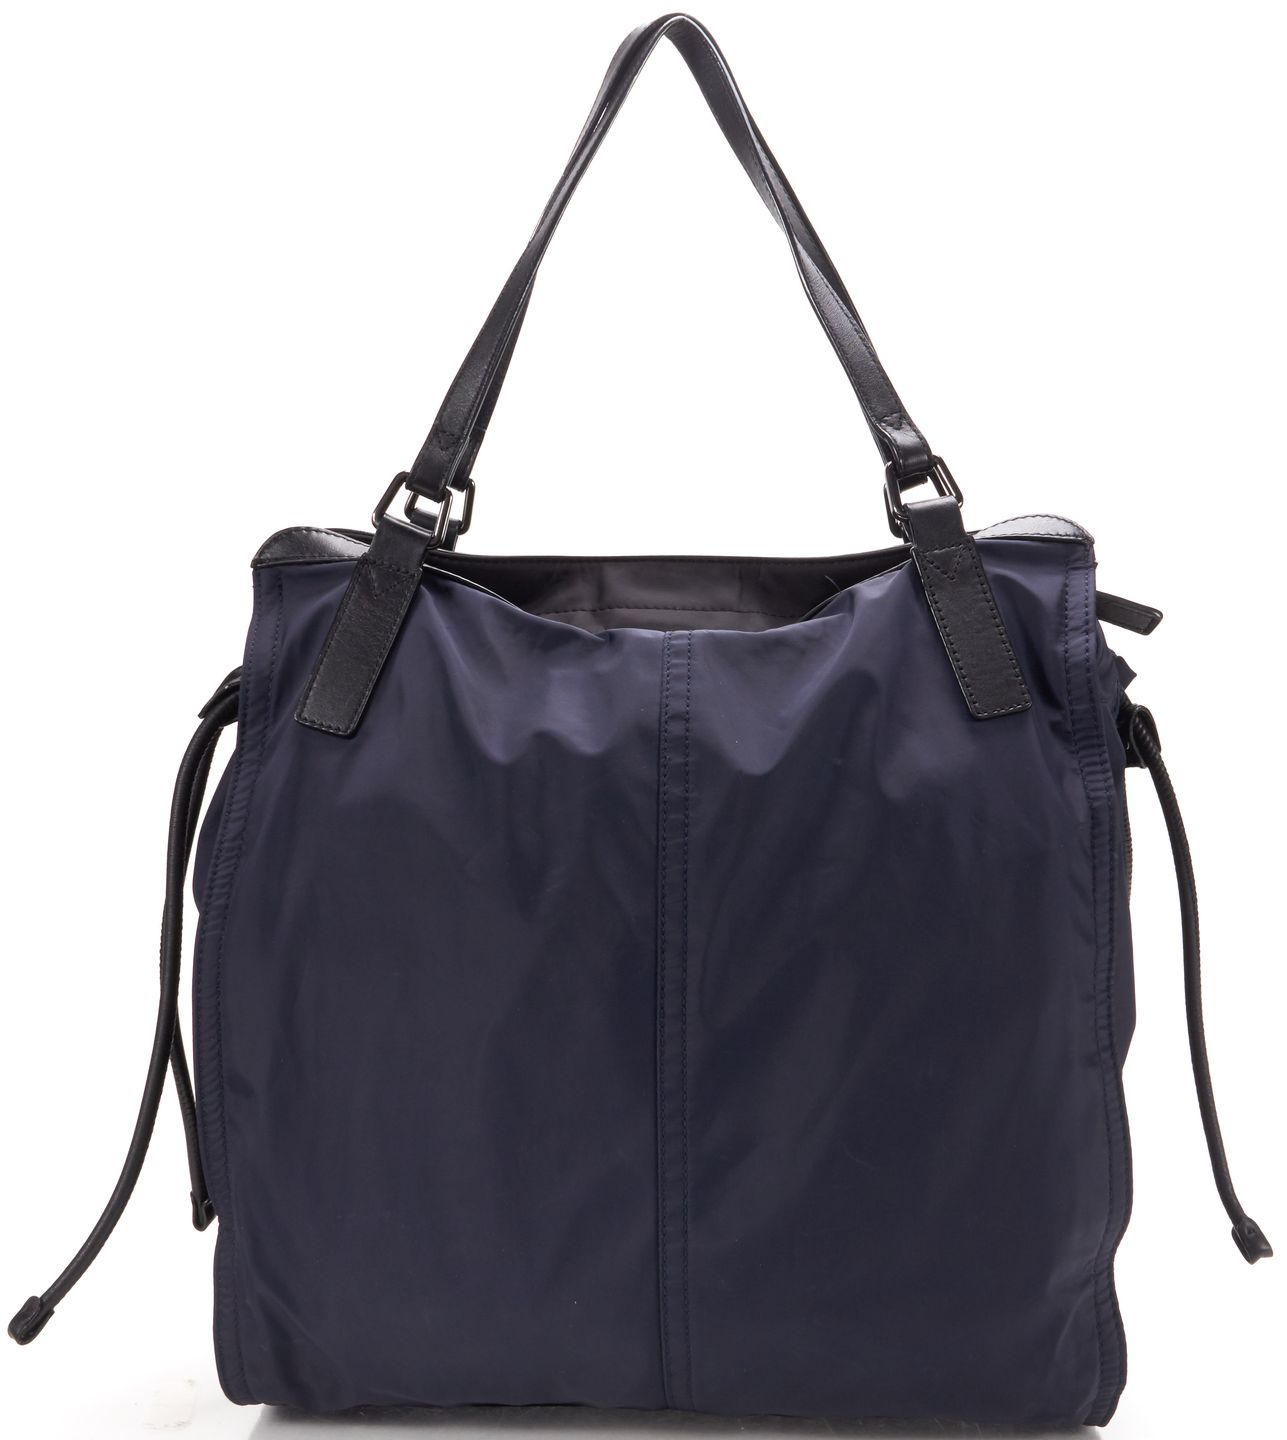 Burberry Navy Nylon Zip Top Buckleigh Packable Tote Bag | Material ...